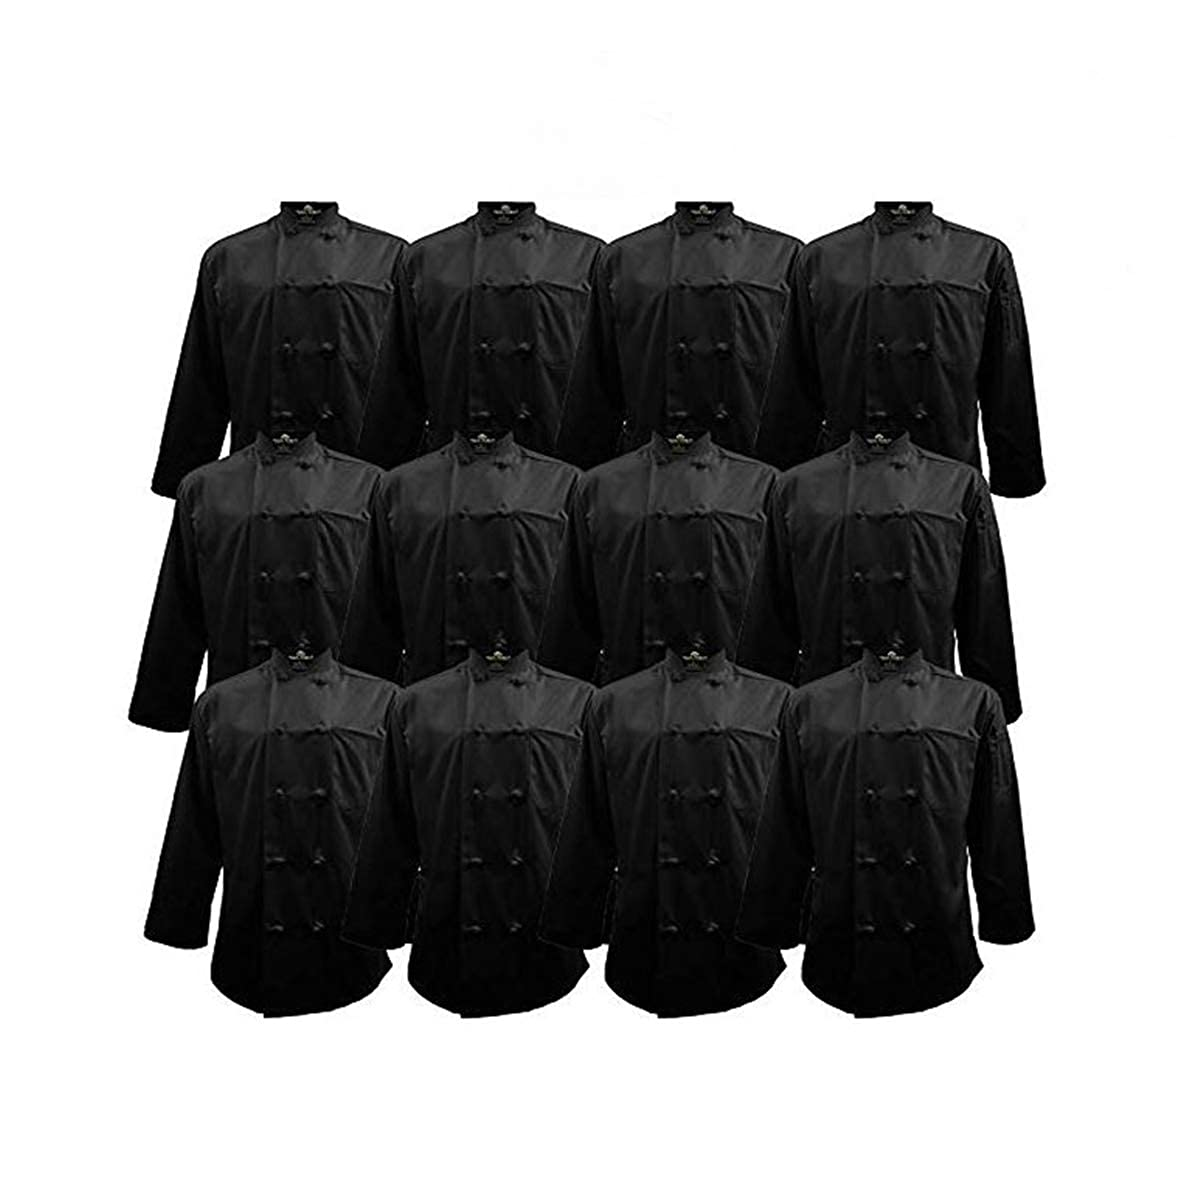 Natural Uniforms Chef Apparel Knot Button Chef Coat Multi Pack Black color